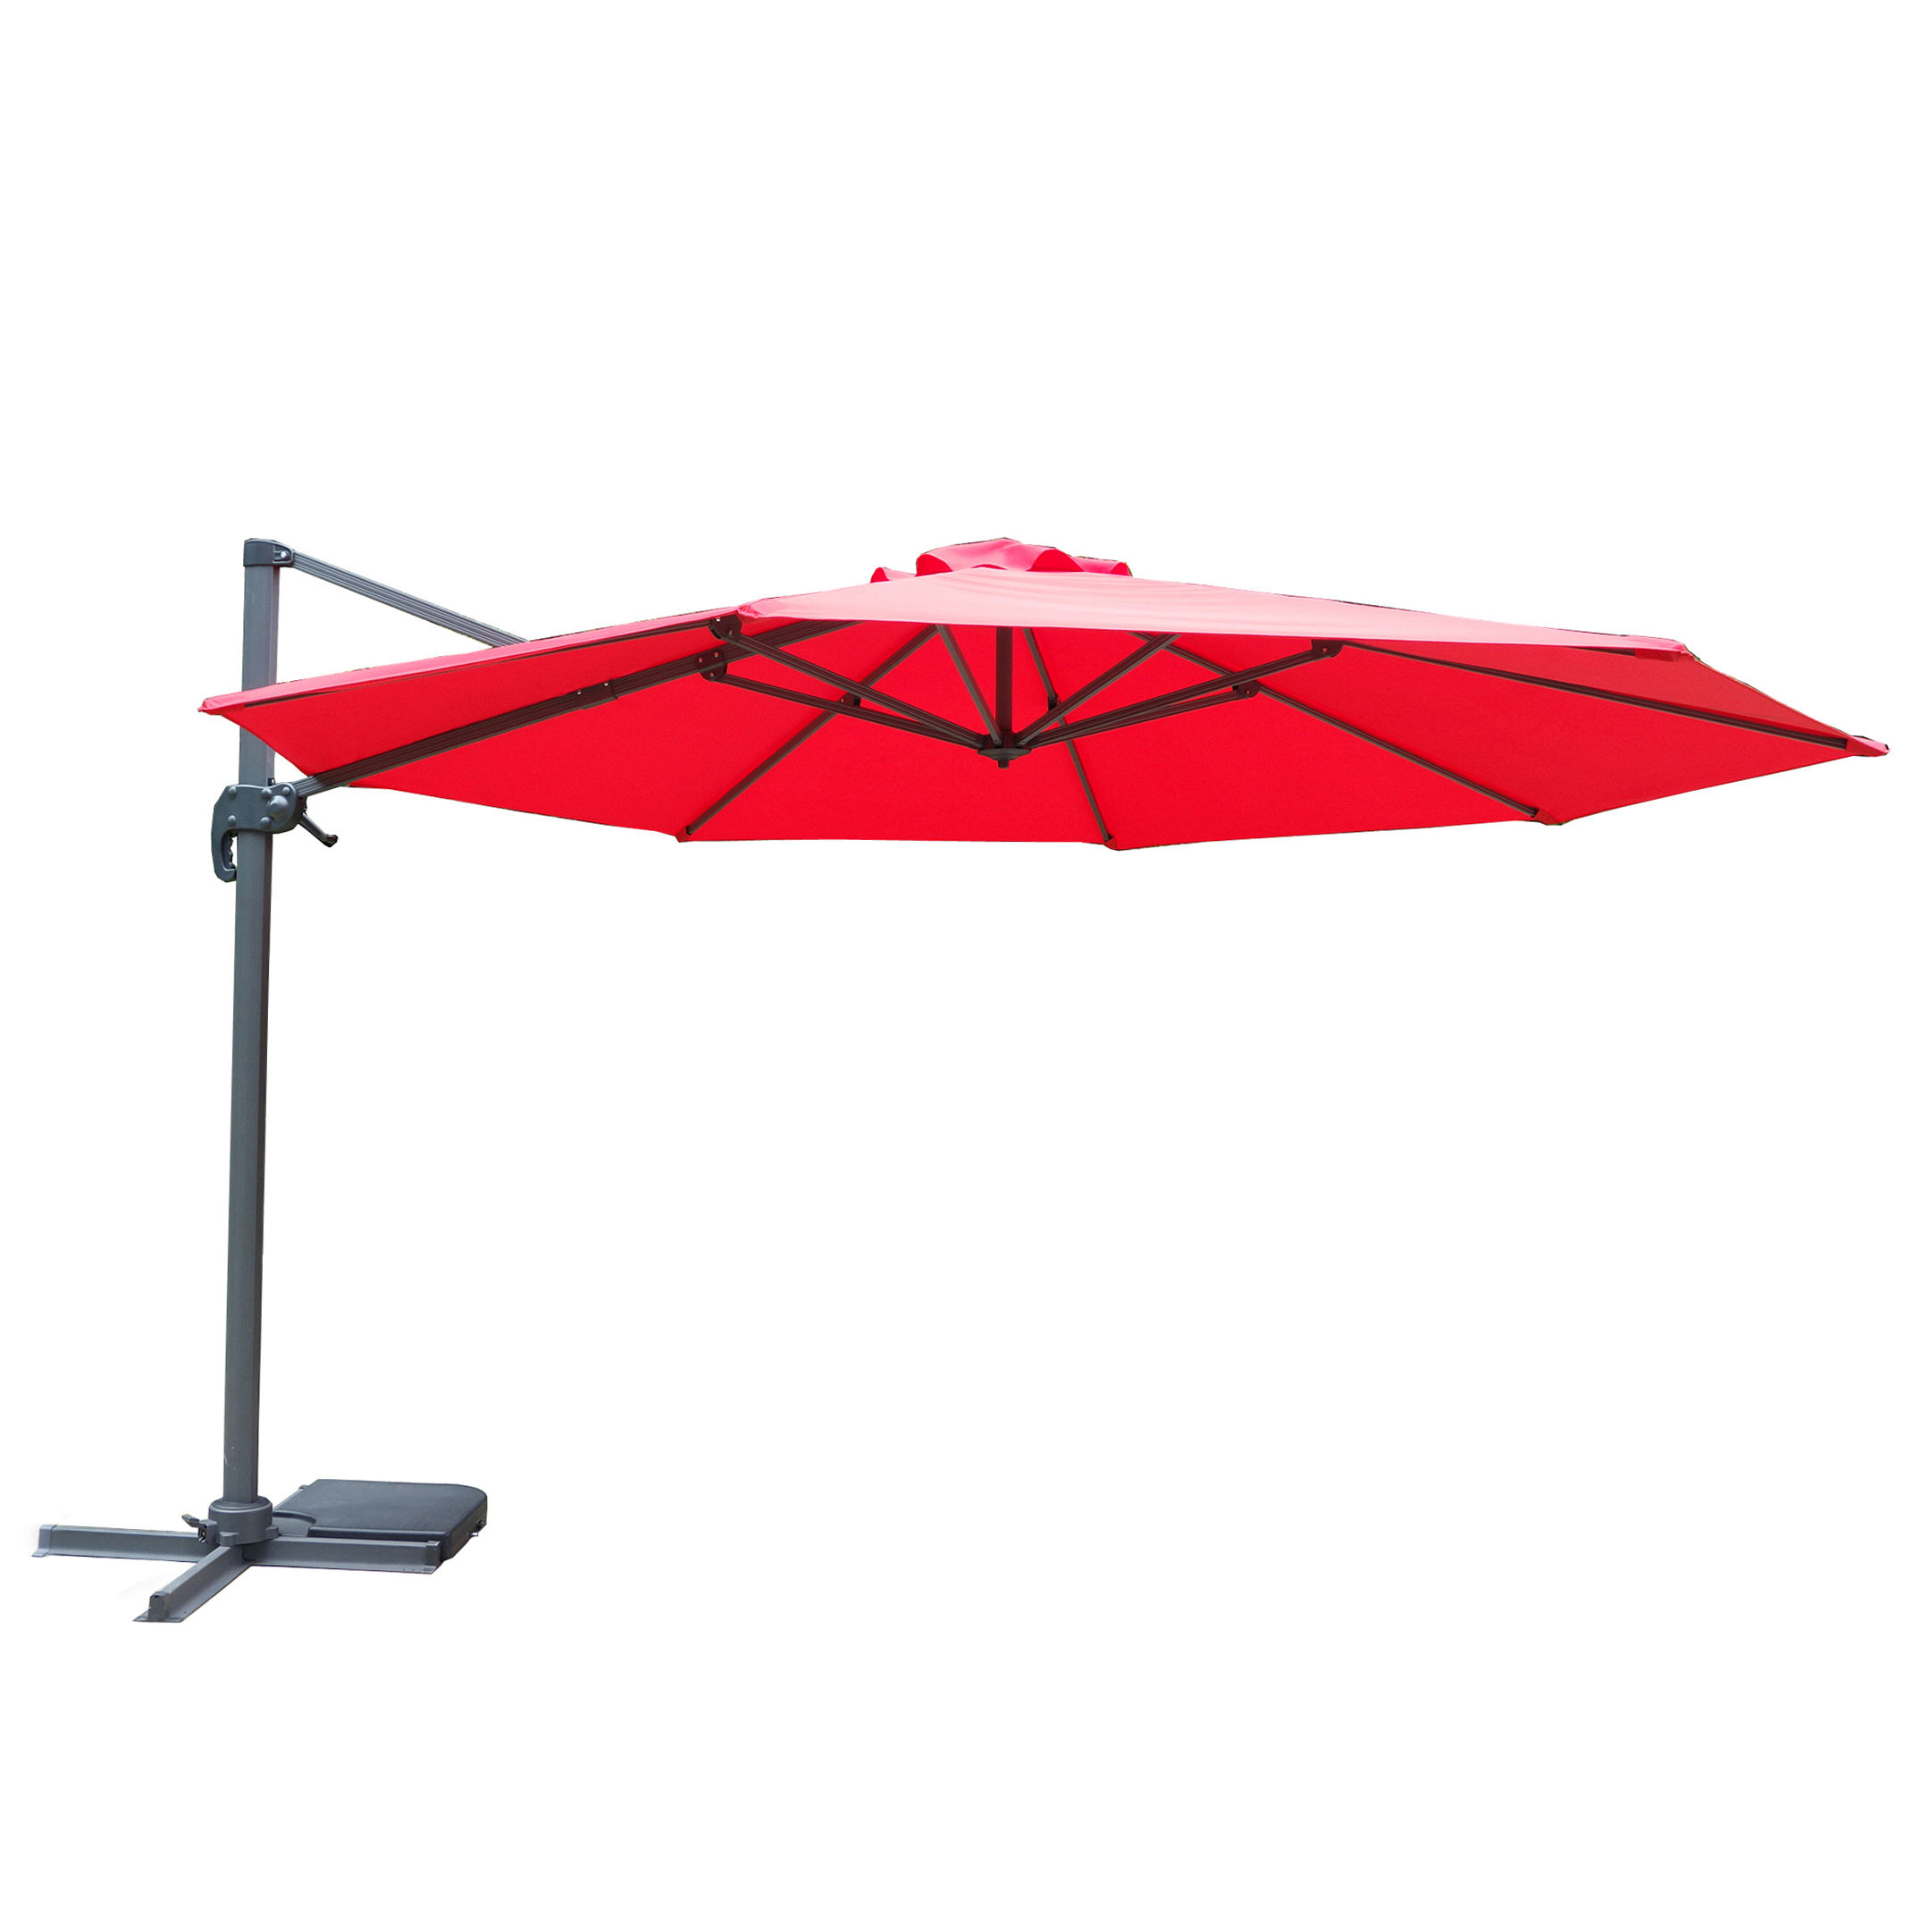 Durable 3m Round Aluminum Cantilever Roma Parasol with Rotation base